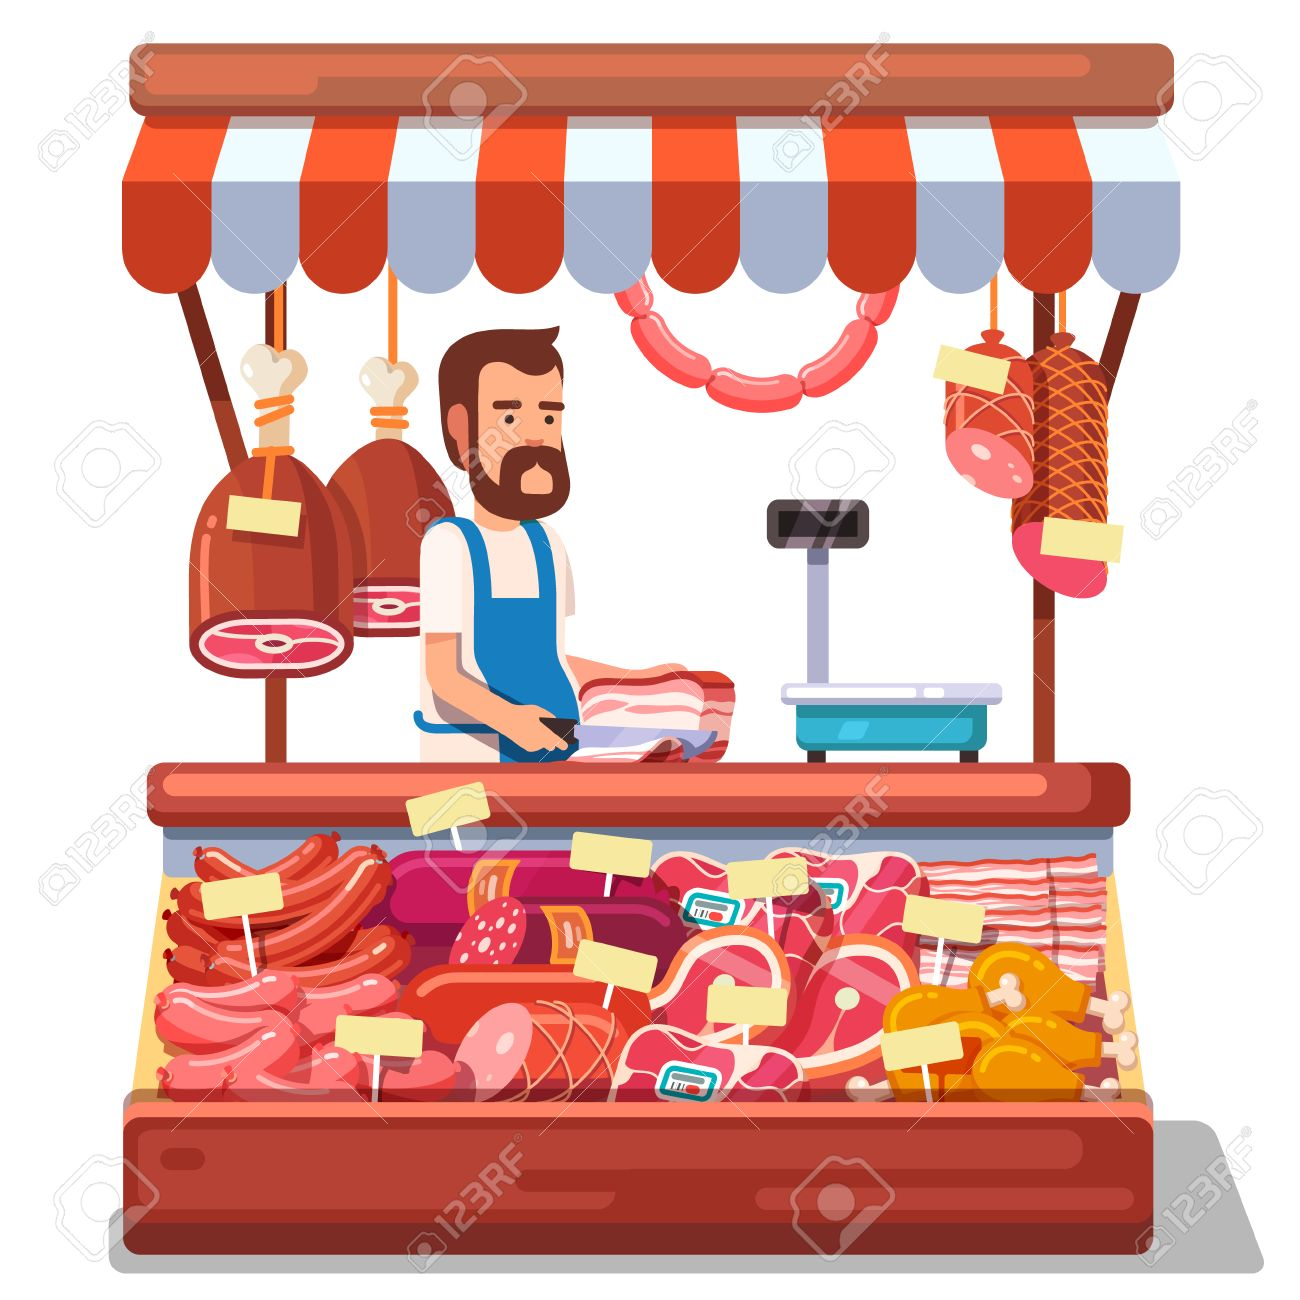 Butchery clipart graphic black and white library Meat In The Market Clipart graphic black and white library